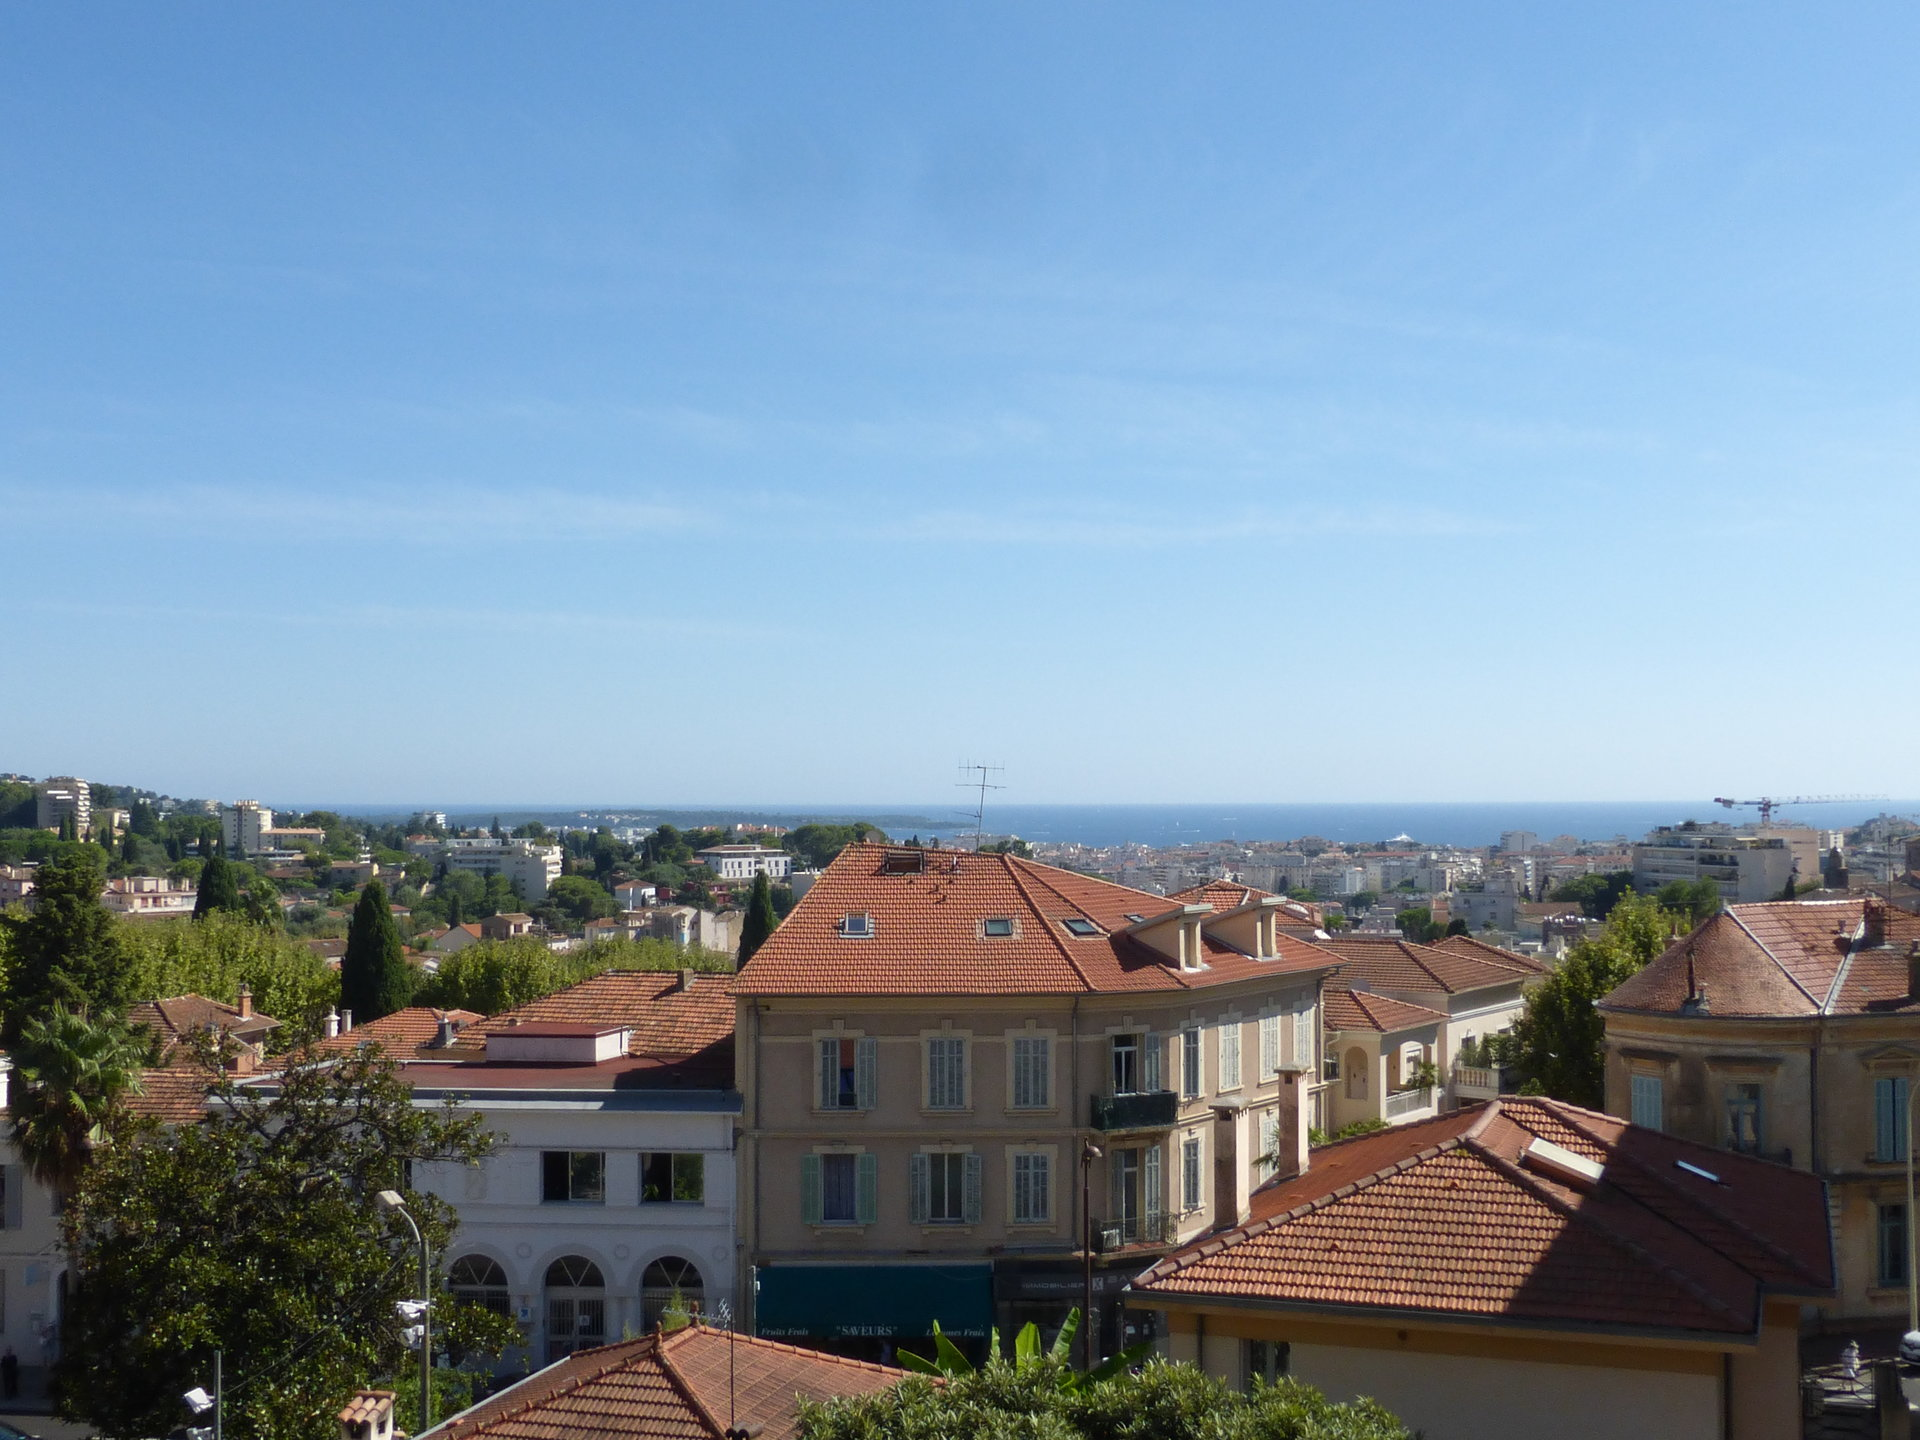 Sale Apartment villa - Le Cannet Vieux Cannet